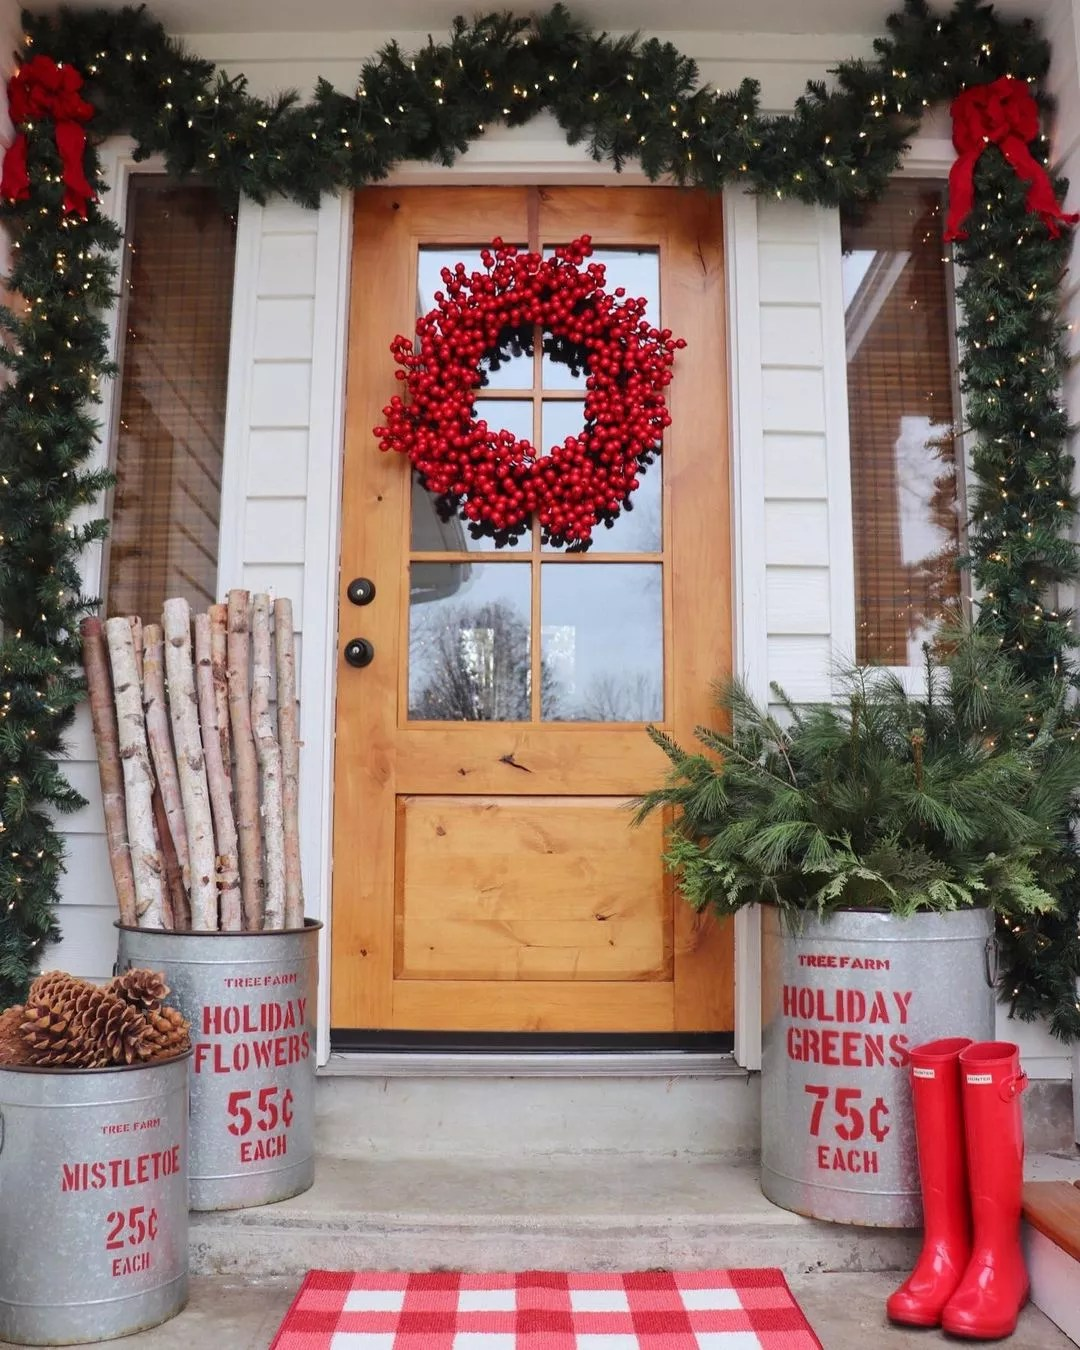 Large wreath made of cranberries hanging on a front door. Photo by @randilynnblog.